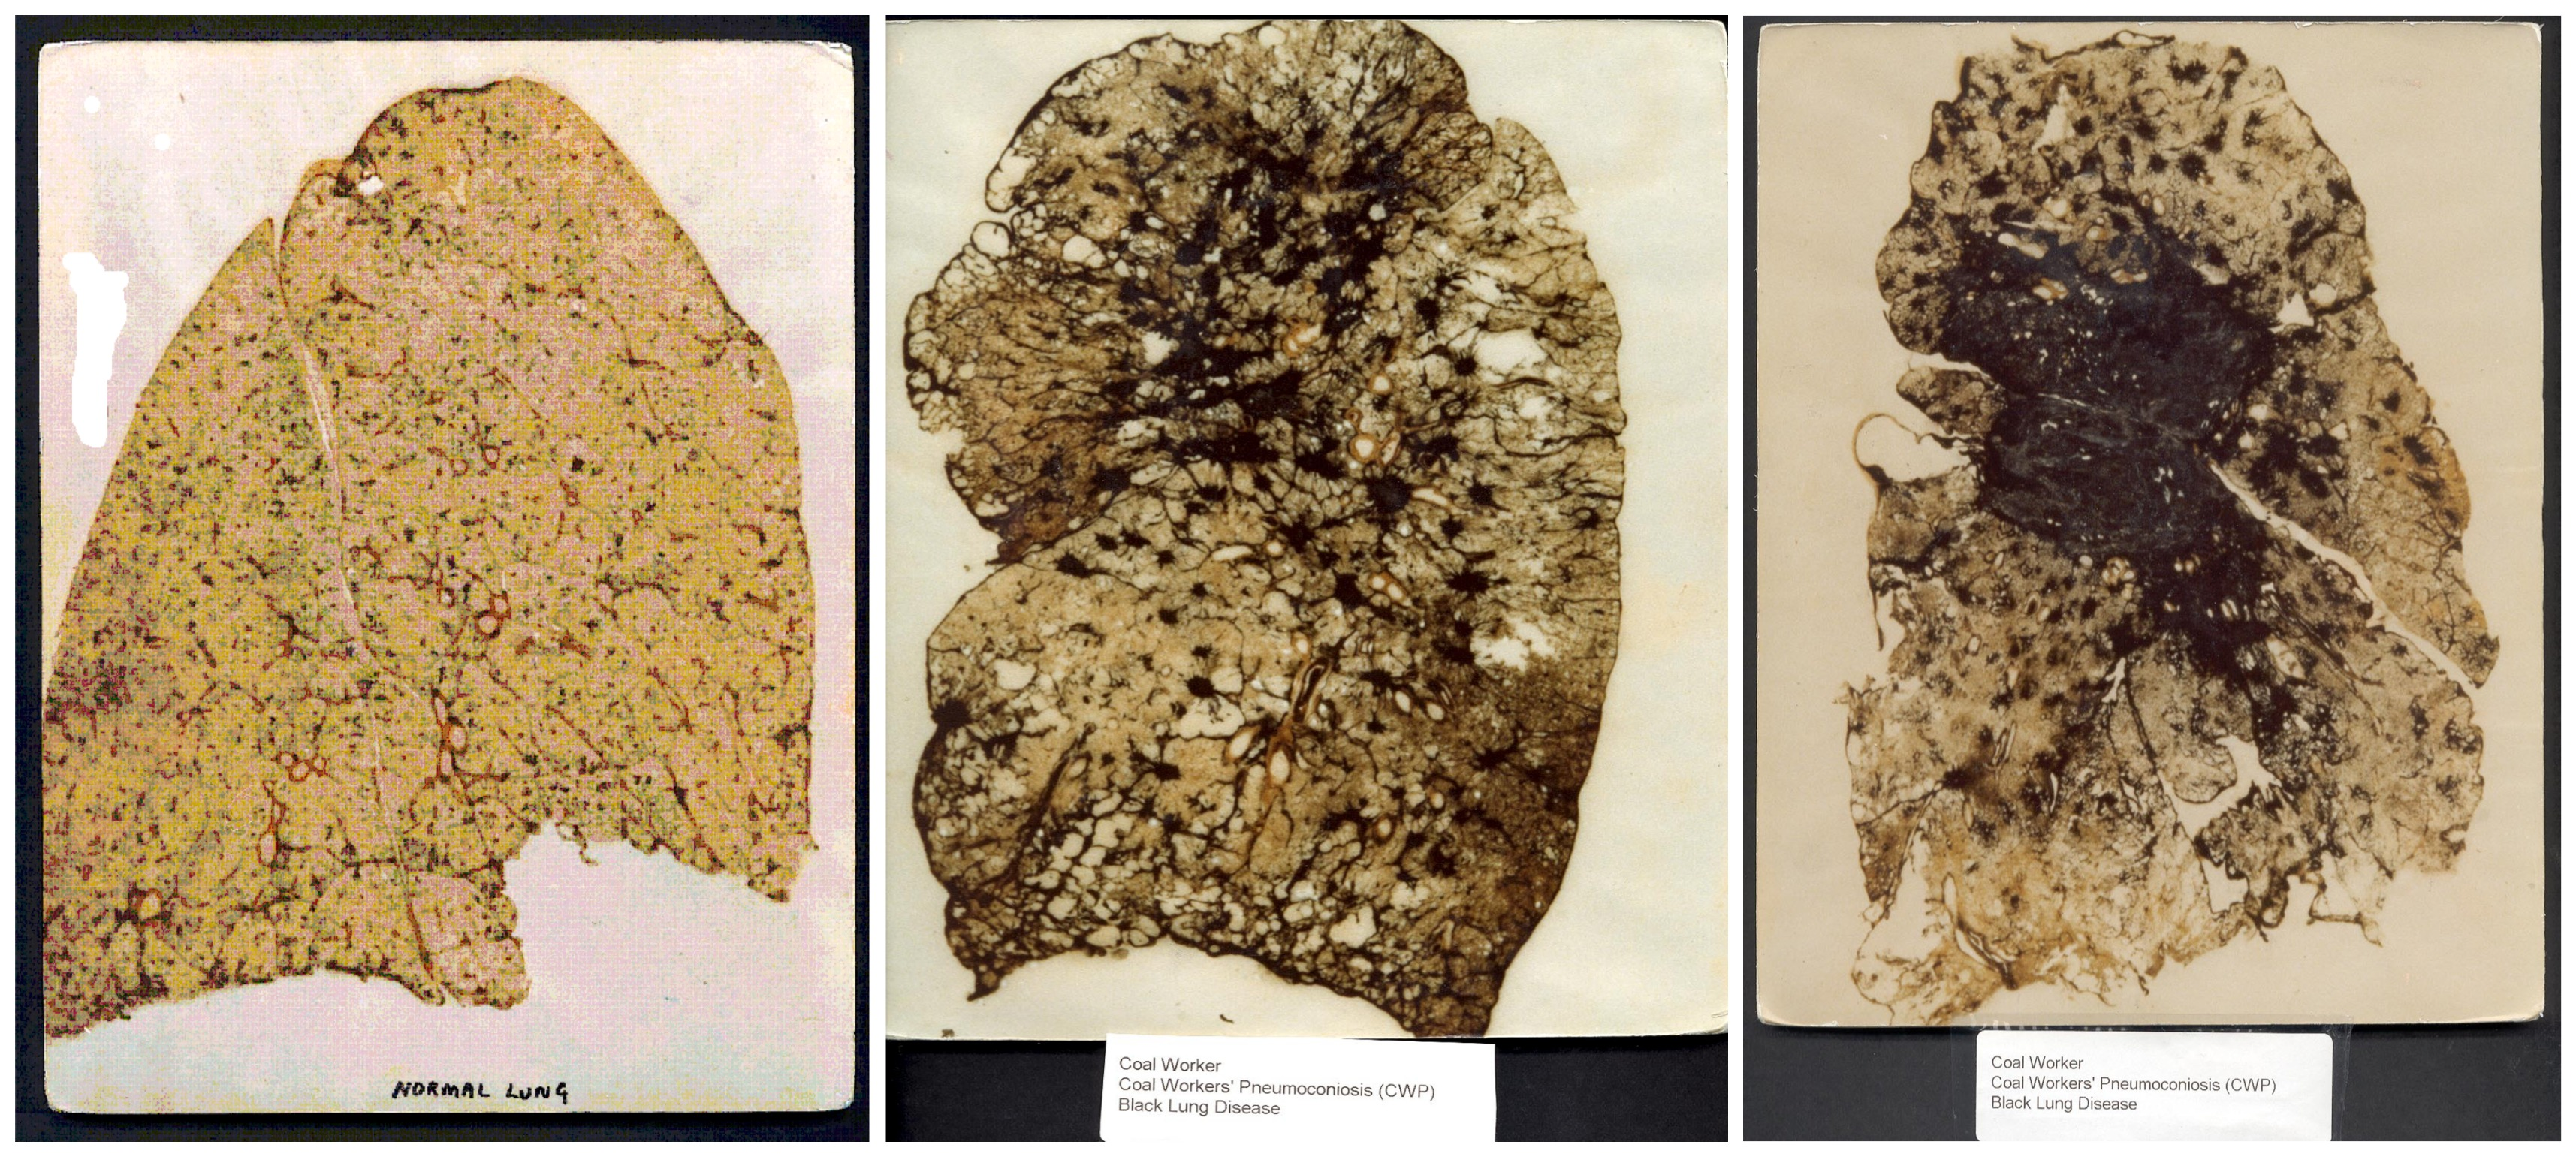 normal human lung compared to diseased lung